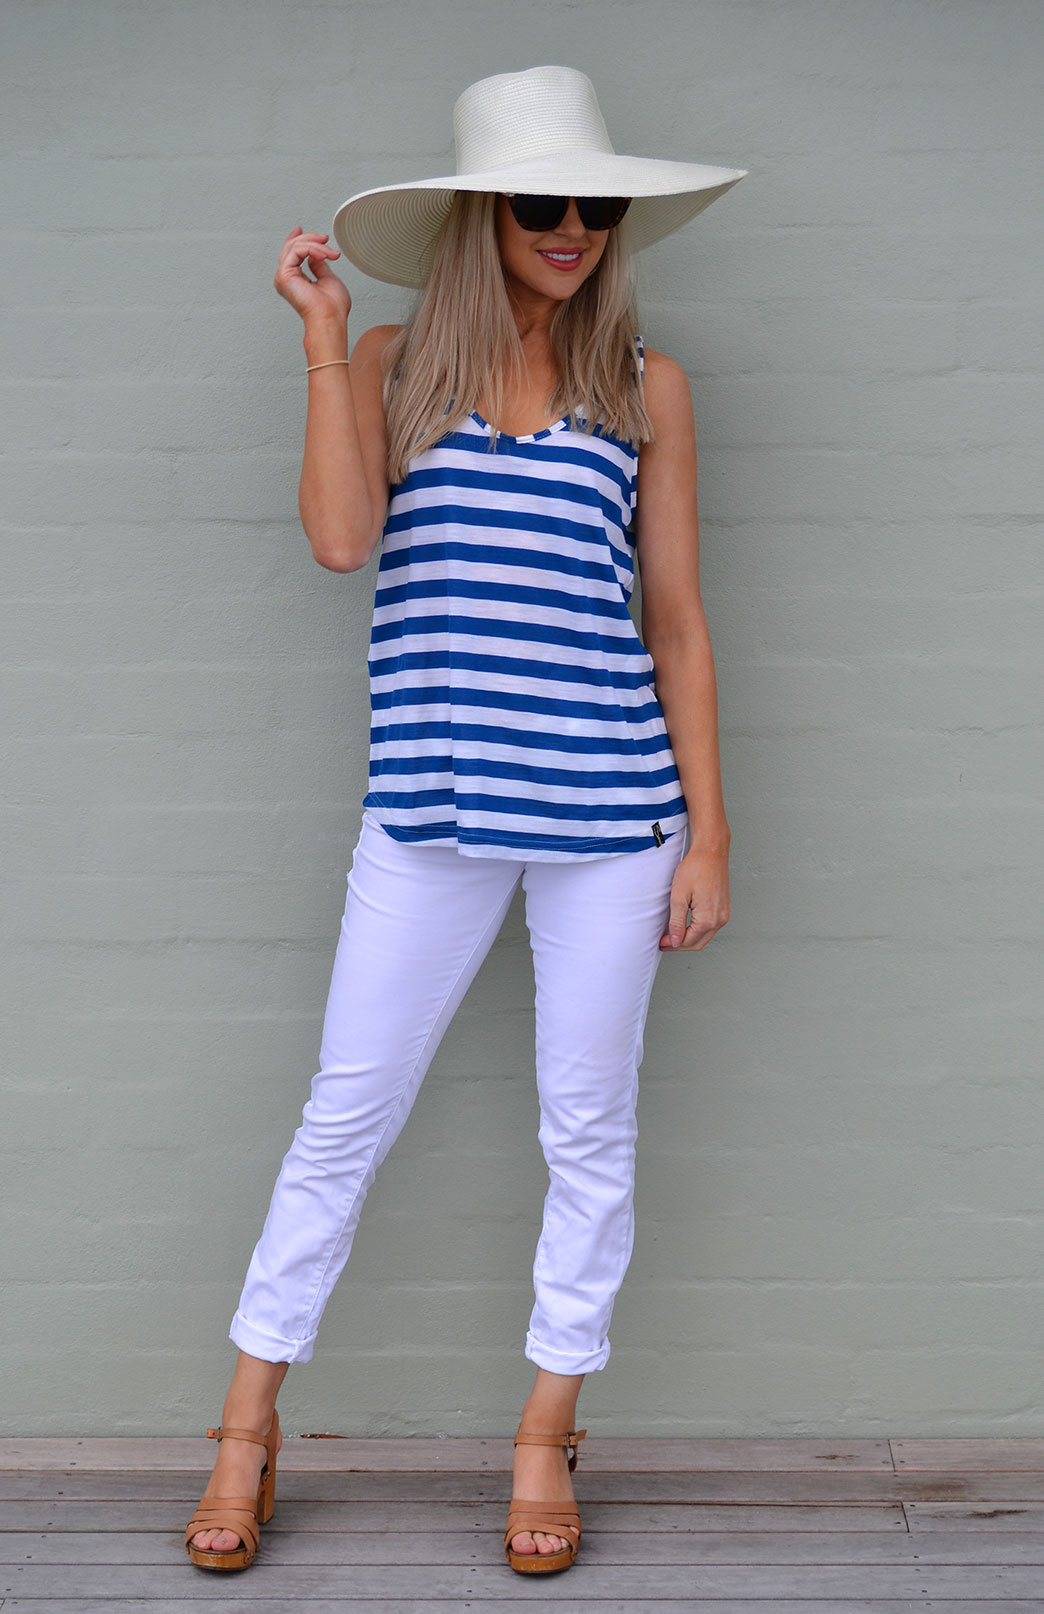 Tank Top - Women's Blue Ivory Stripe Wool Summer Tank Top - Smitten Merino Tasmania Australia